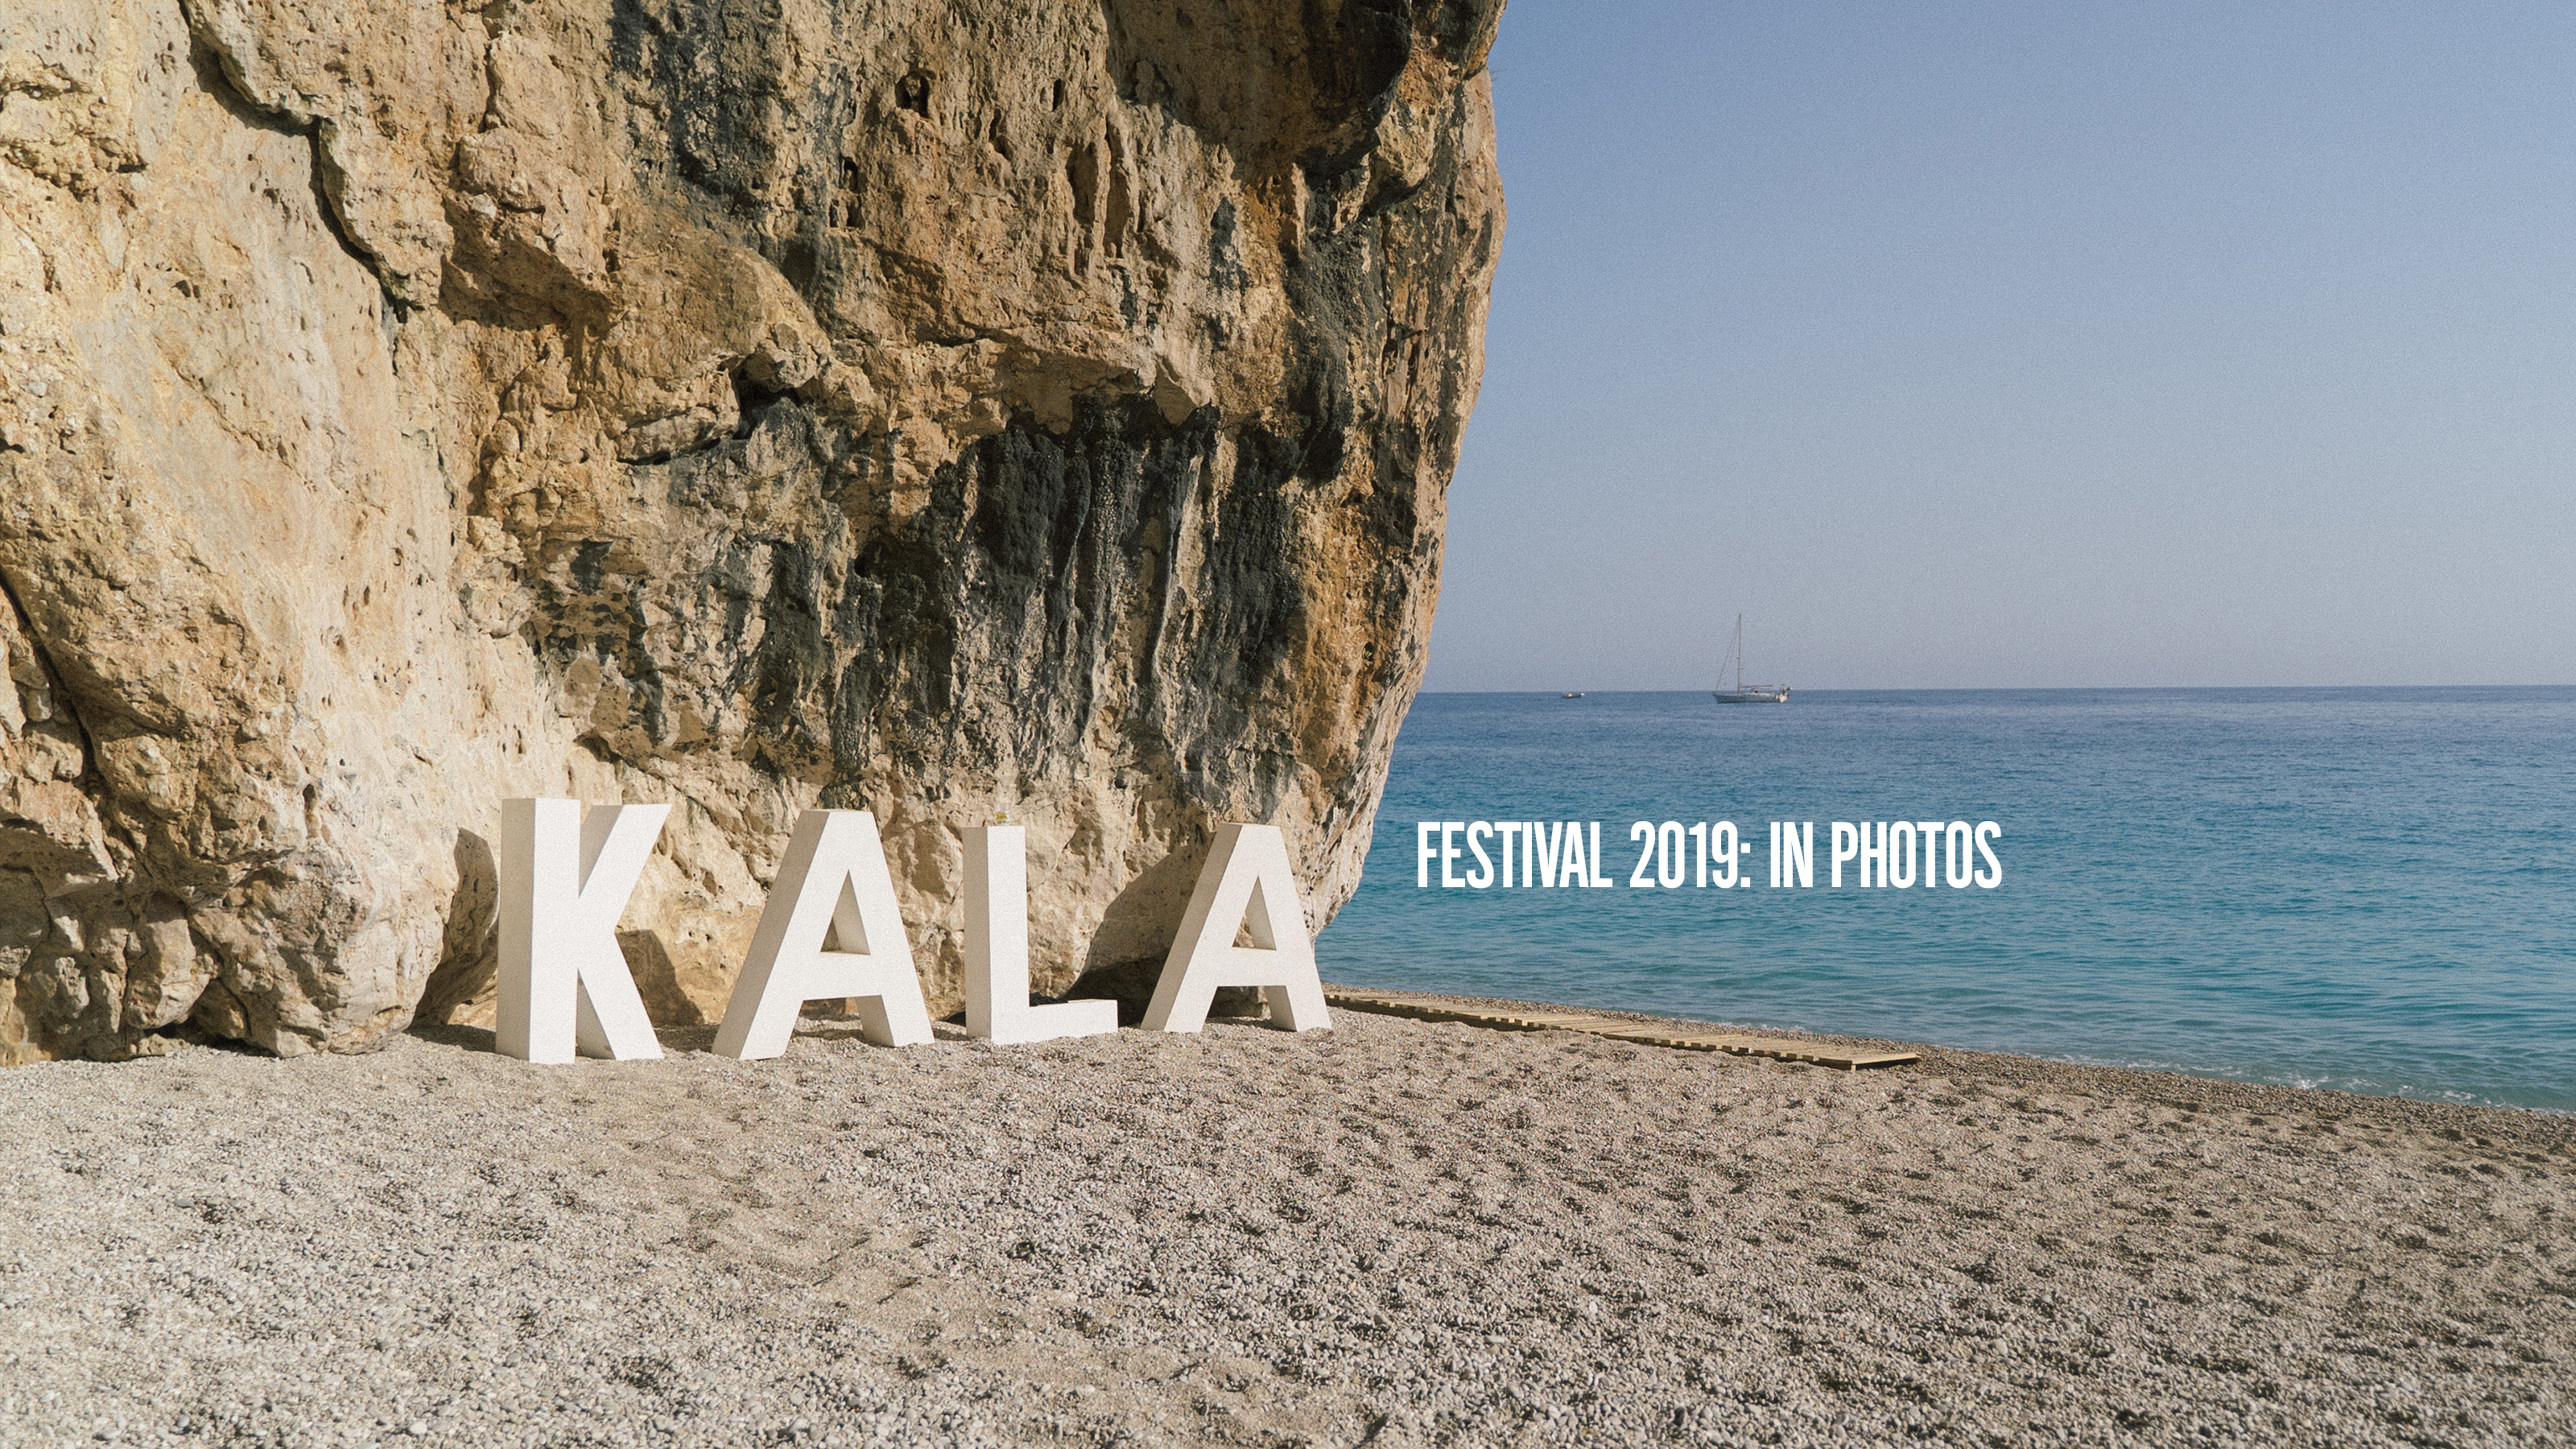 Kala Festival 2019 in pictures